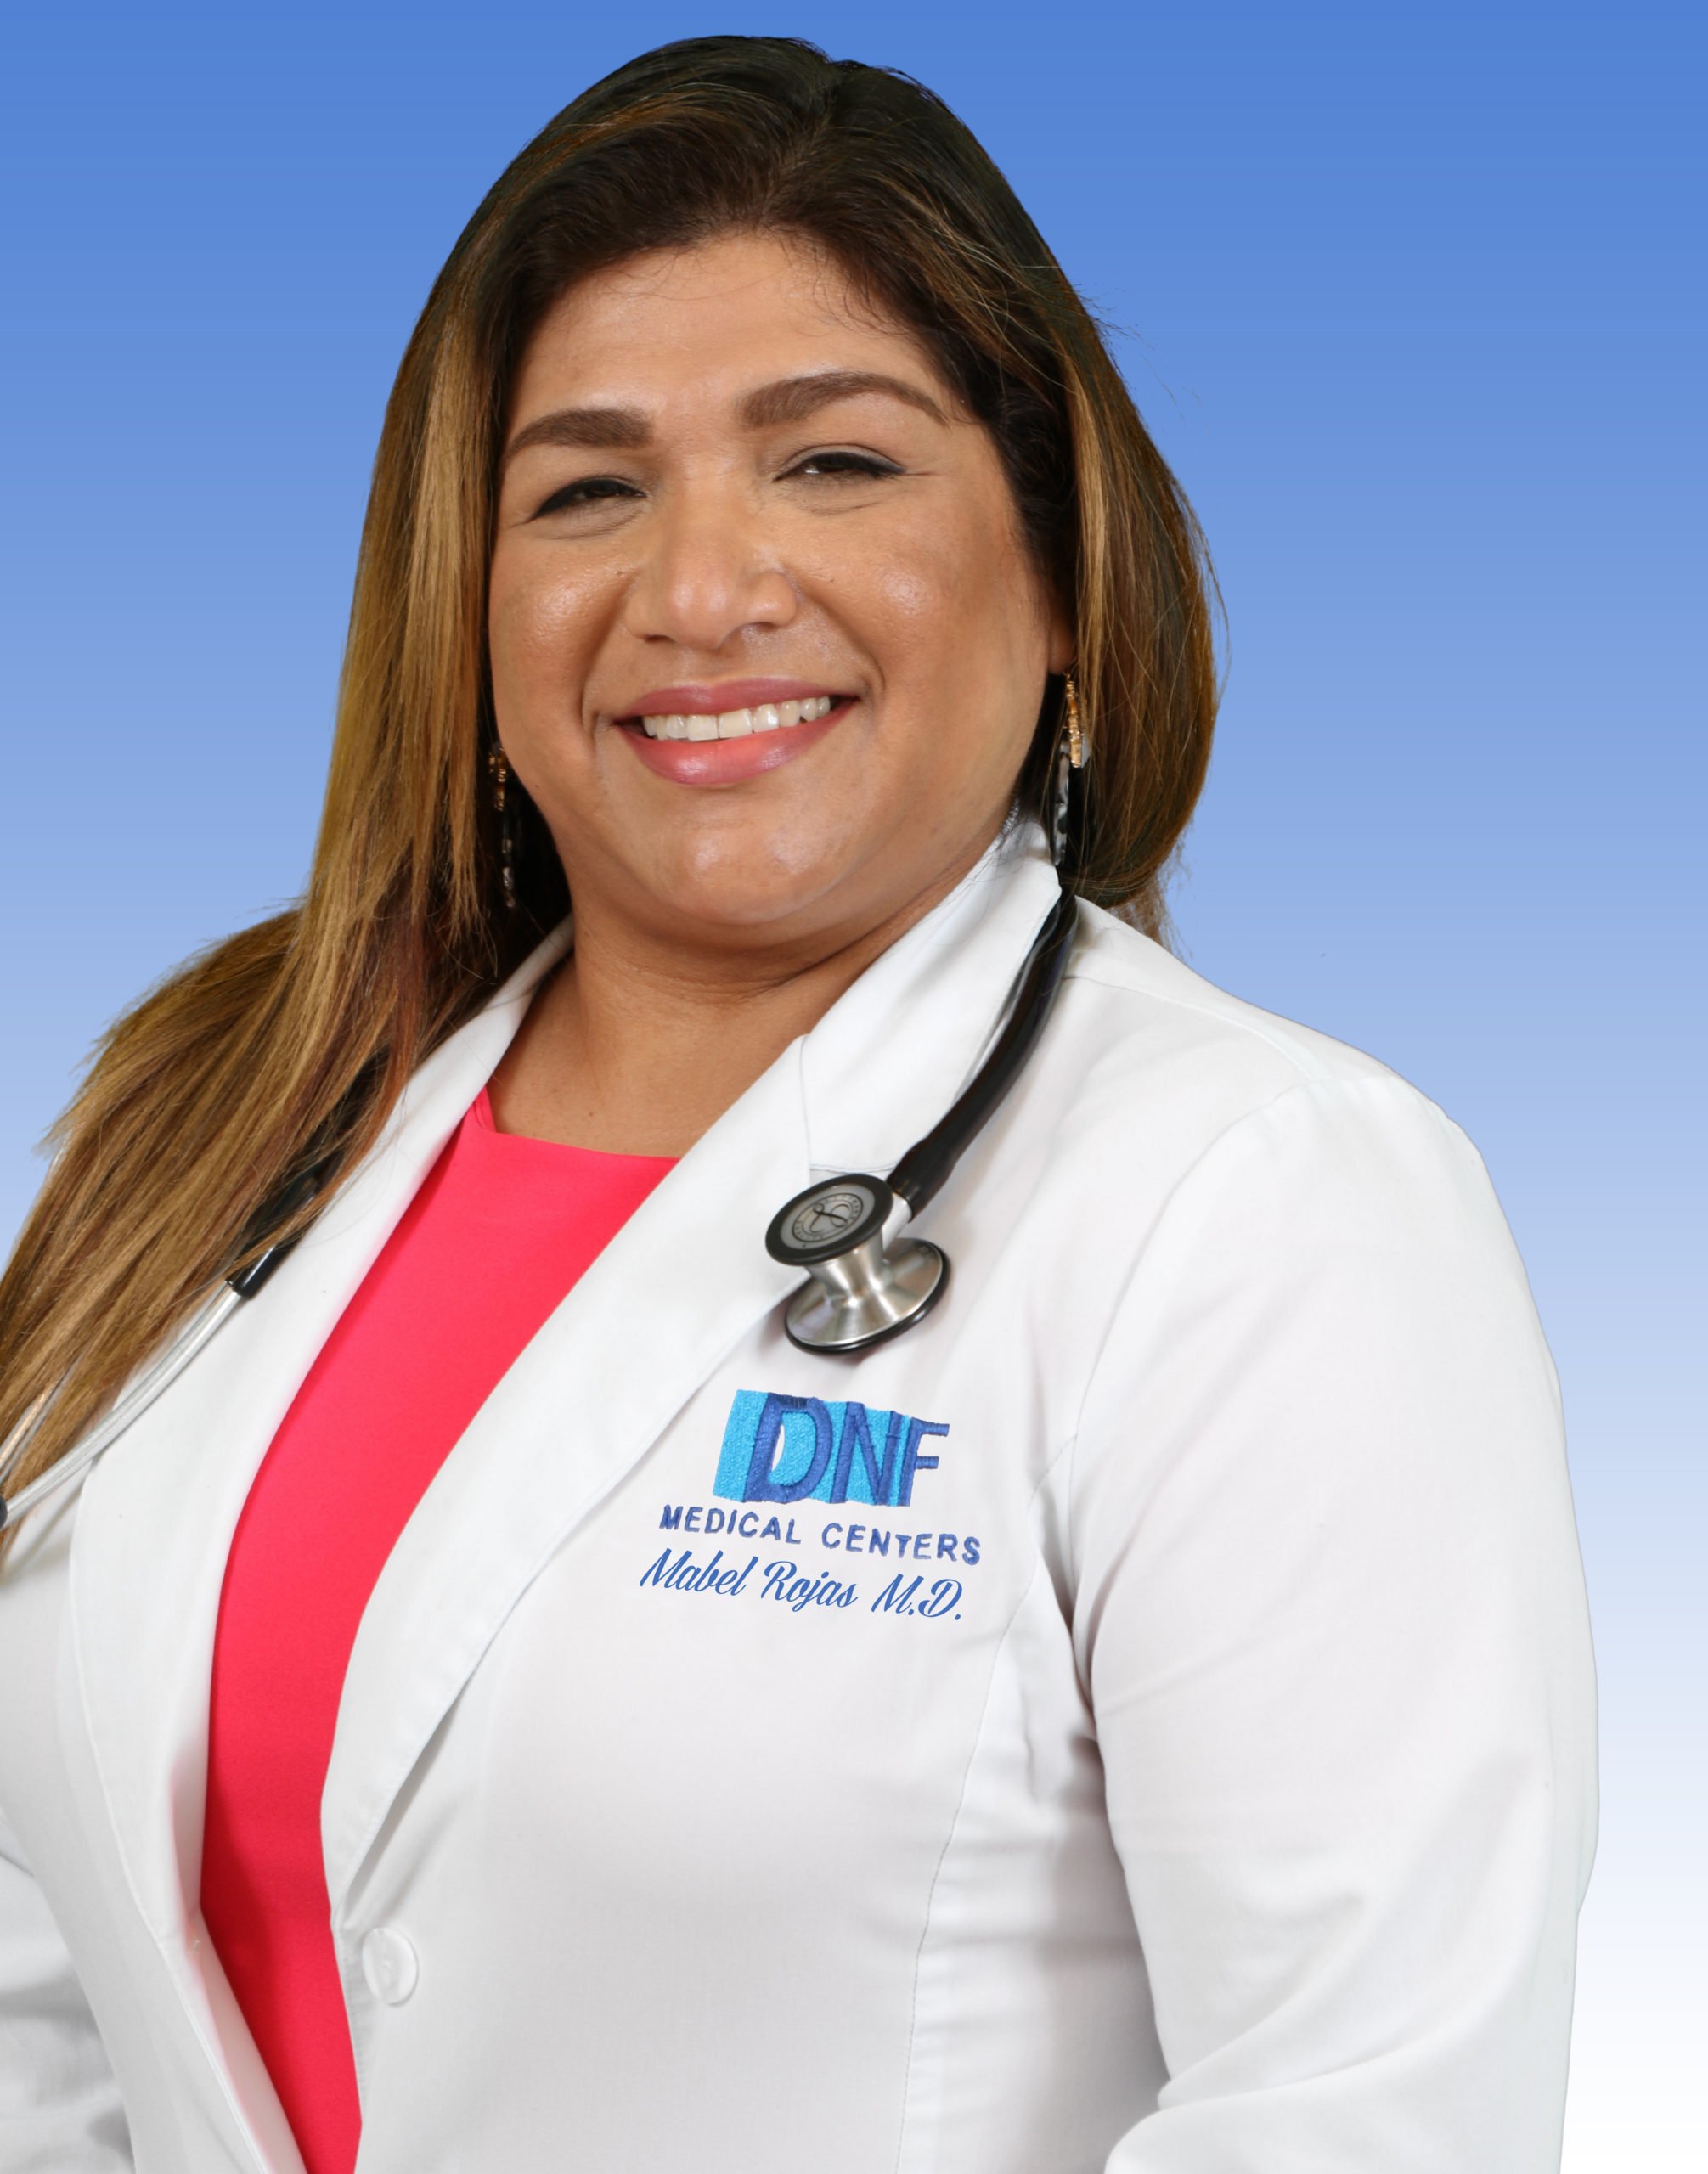 Mabel P. Rojas Vives, MD